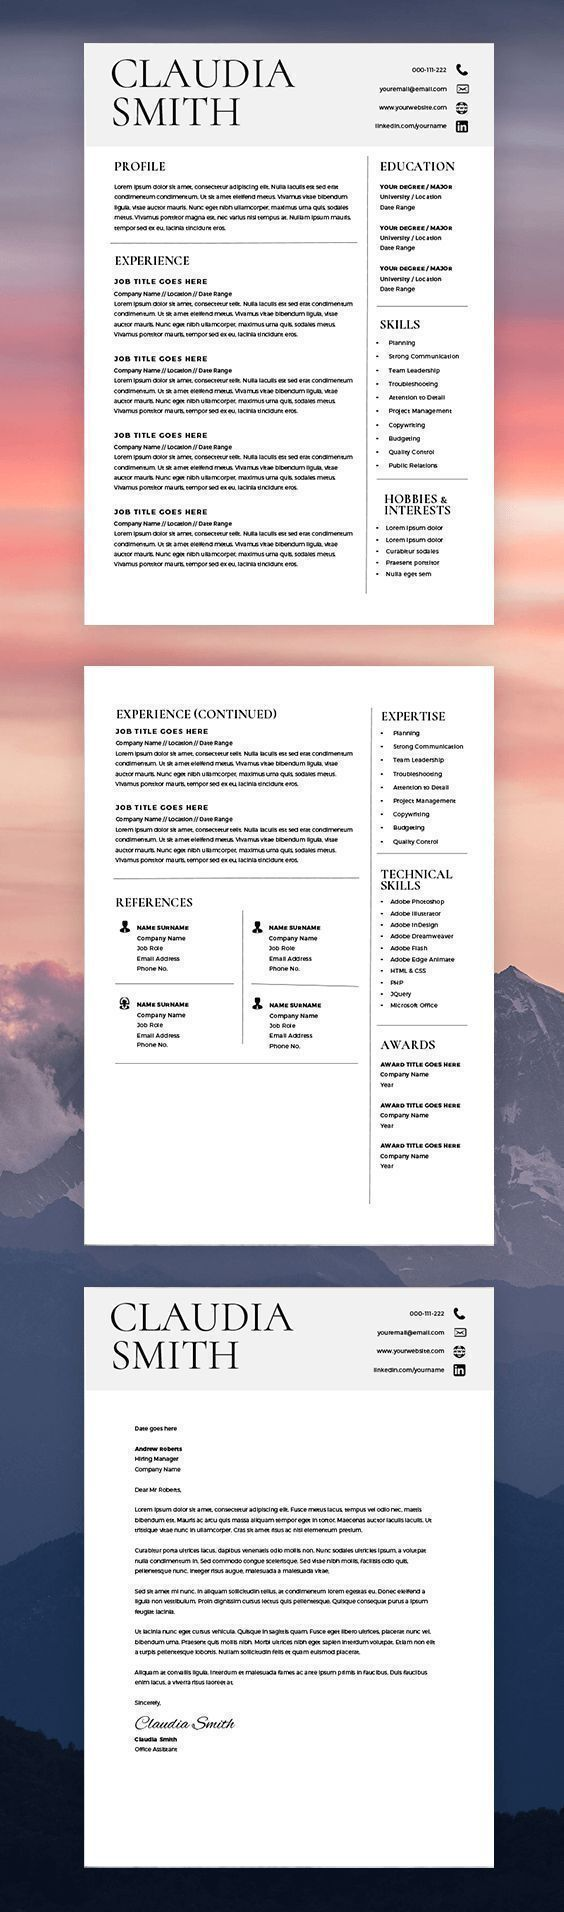 Medical Resume Template Word Minimalist Resume with